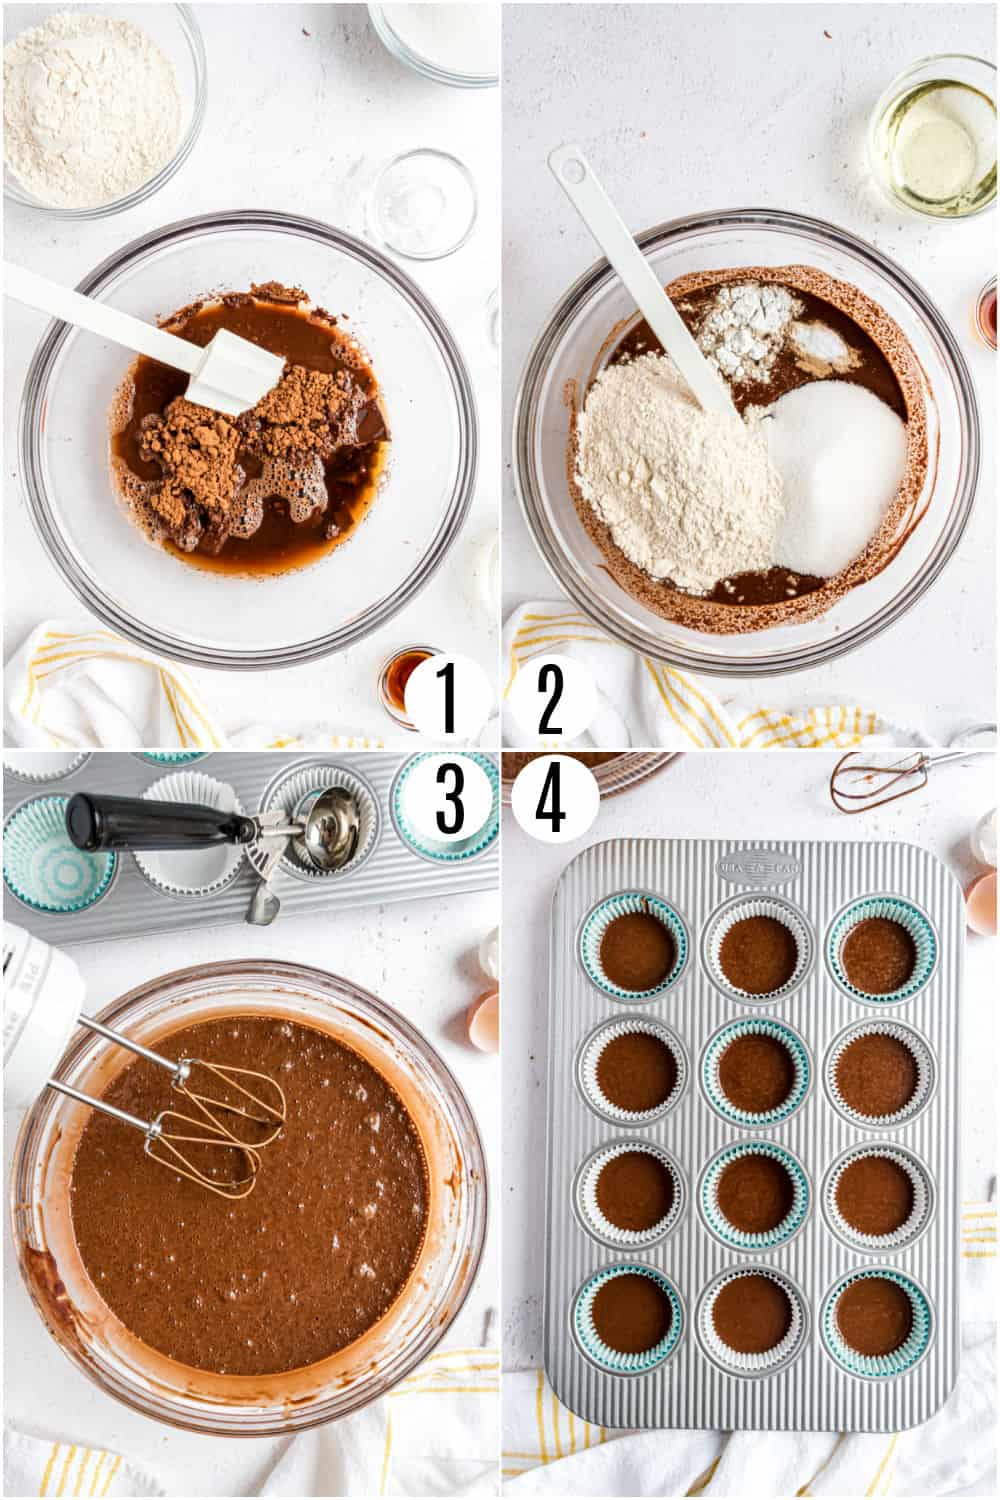 Step by step photos showing how to make chocolate cupcakes.